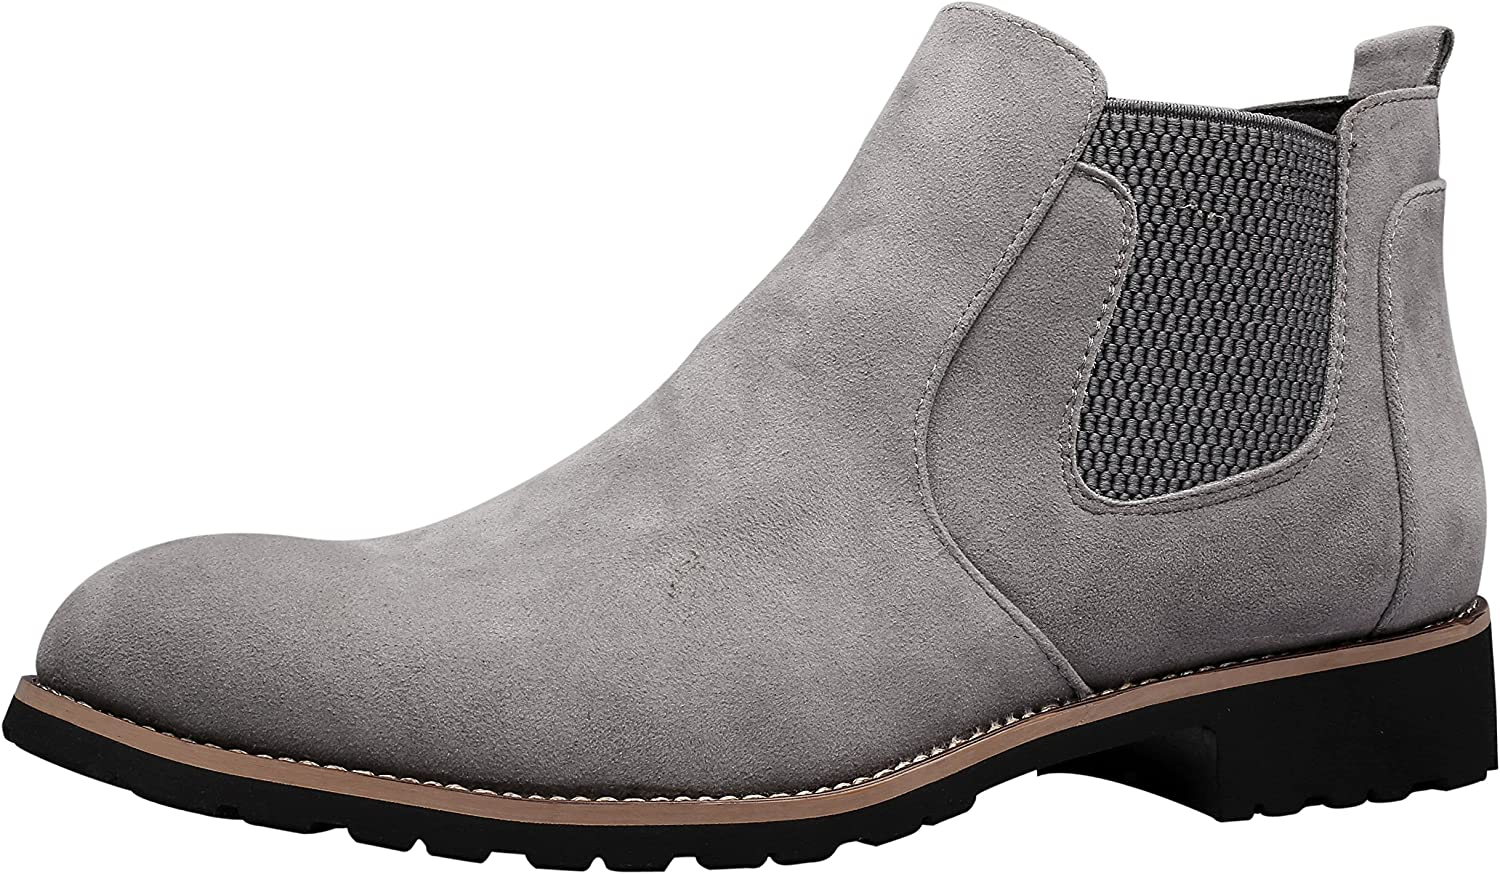 Santimon Chelsea Boots Men Suede Ankle Boots Casual Chukka Slip-on Dress Formal shoes